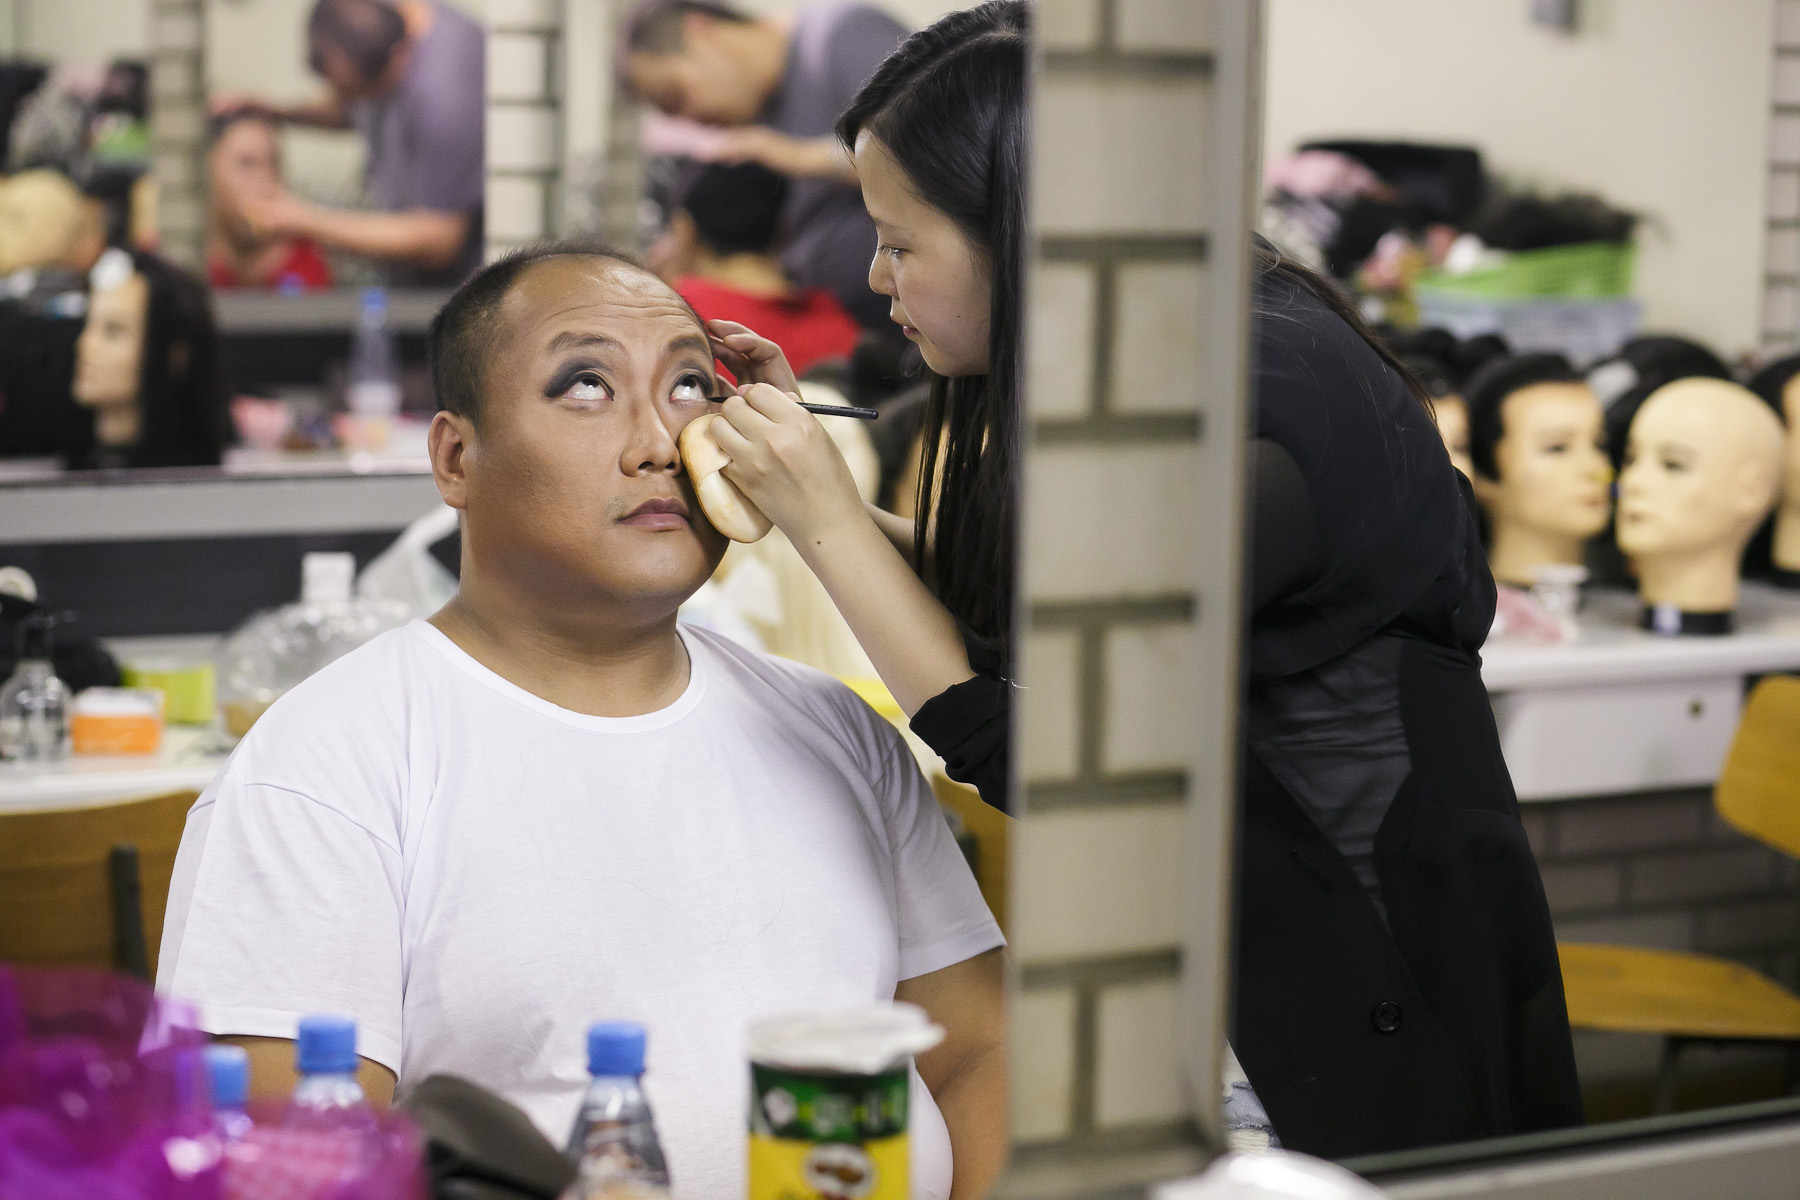 Li Shuang in make-up before his performance in China National Opera House production of Giacomo Puccini\'s Turandot in Cankarjev dom Cultural & Congress center in Ljubljana, Slovenia, Sep. 1, 2015.